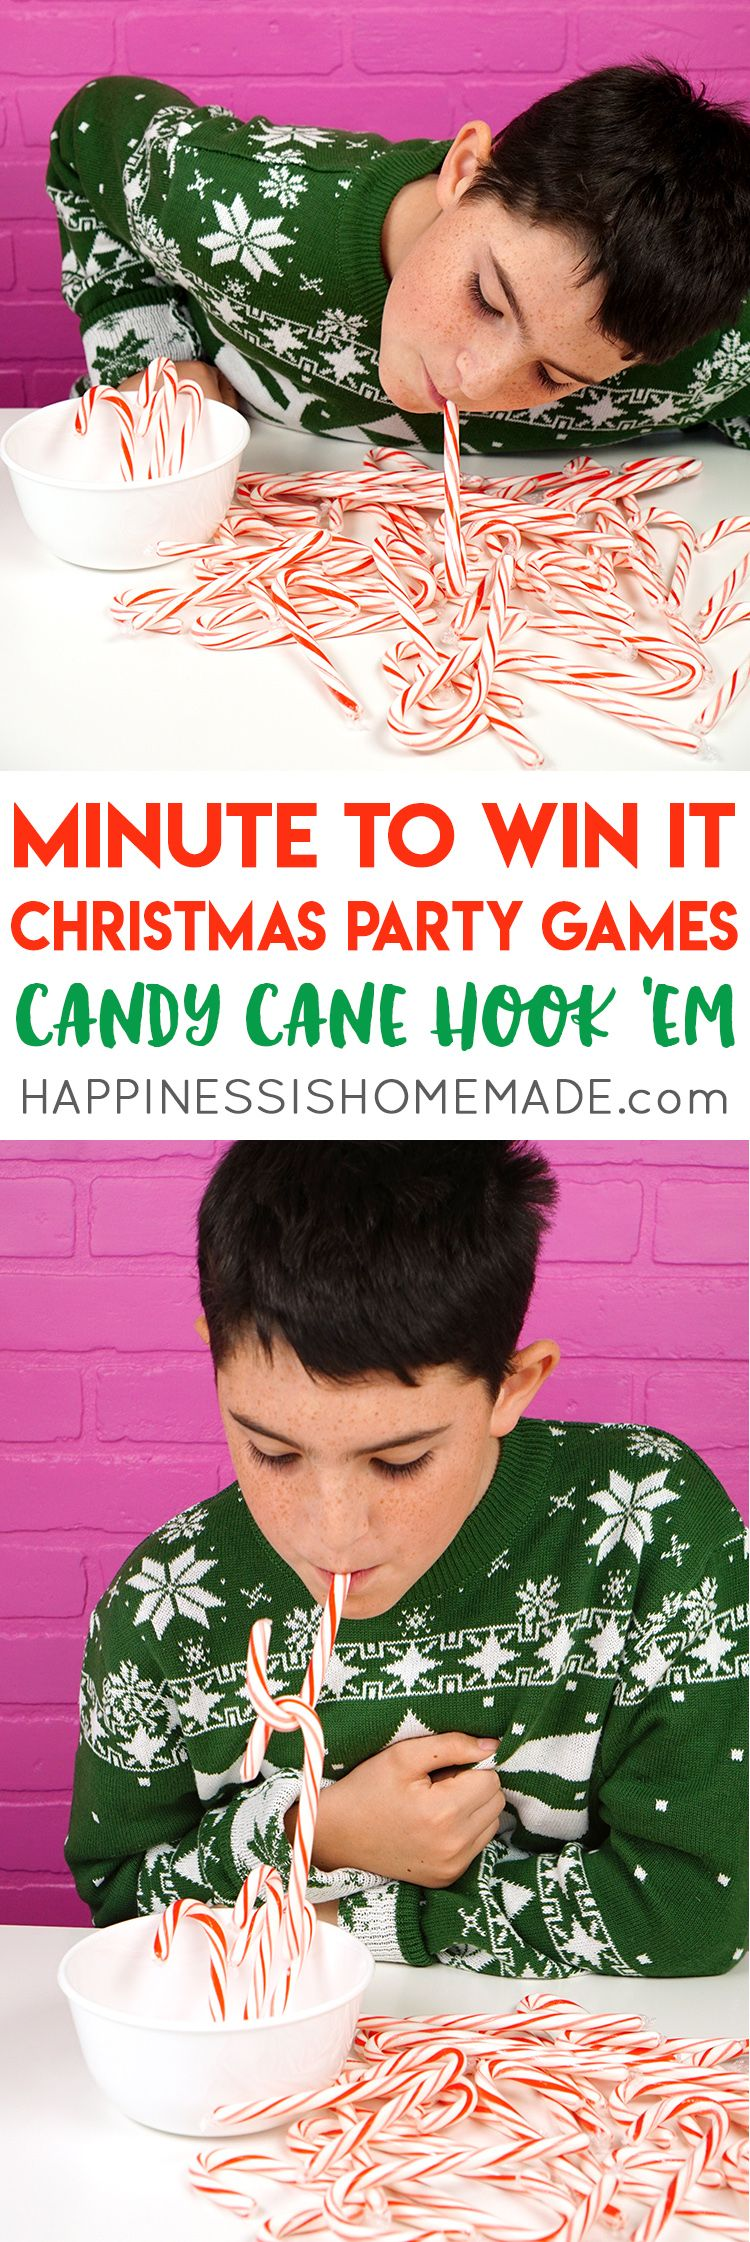 Host the best Christmas party ever with these fun